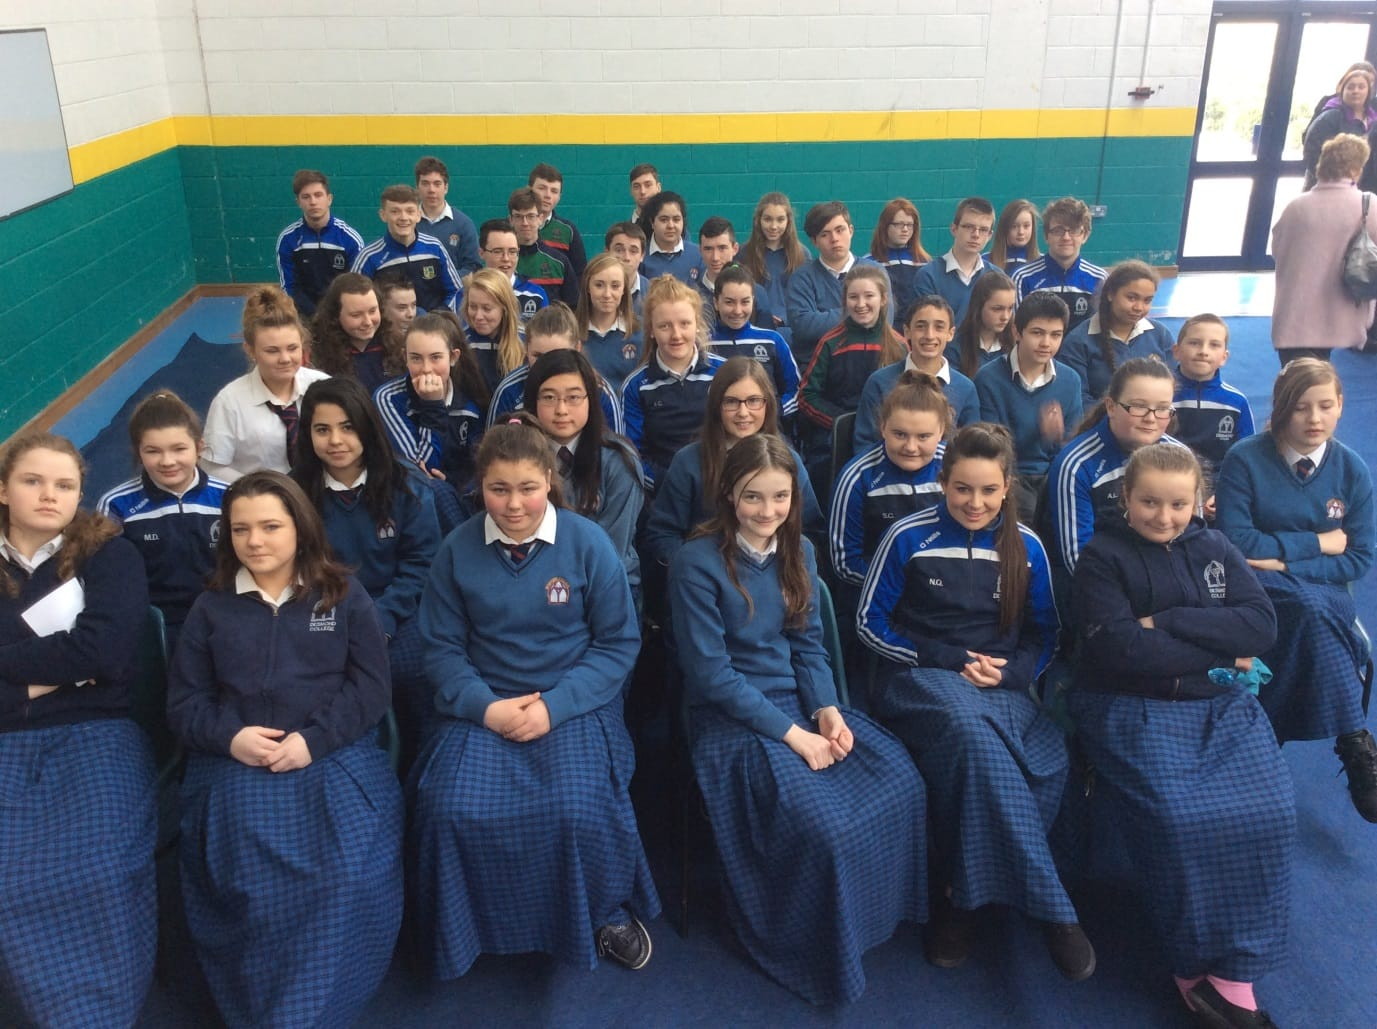 March 2016: Pupils gathering to watch the raising of the flag at the 1916 commemoration ceremony in Desmond College